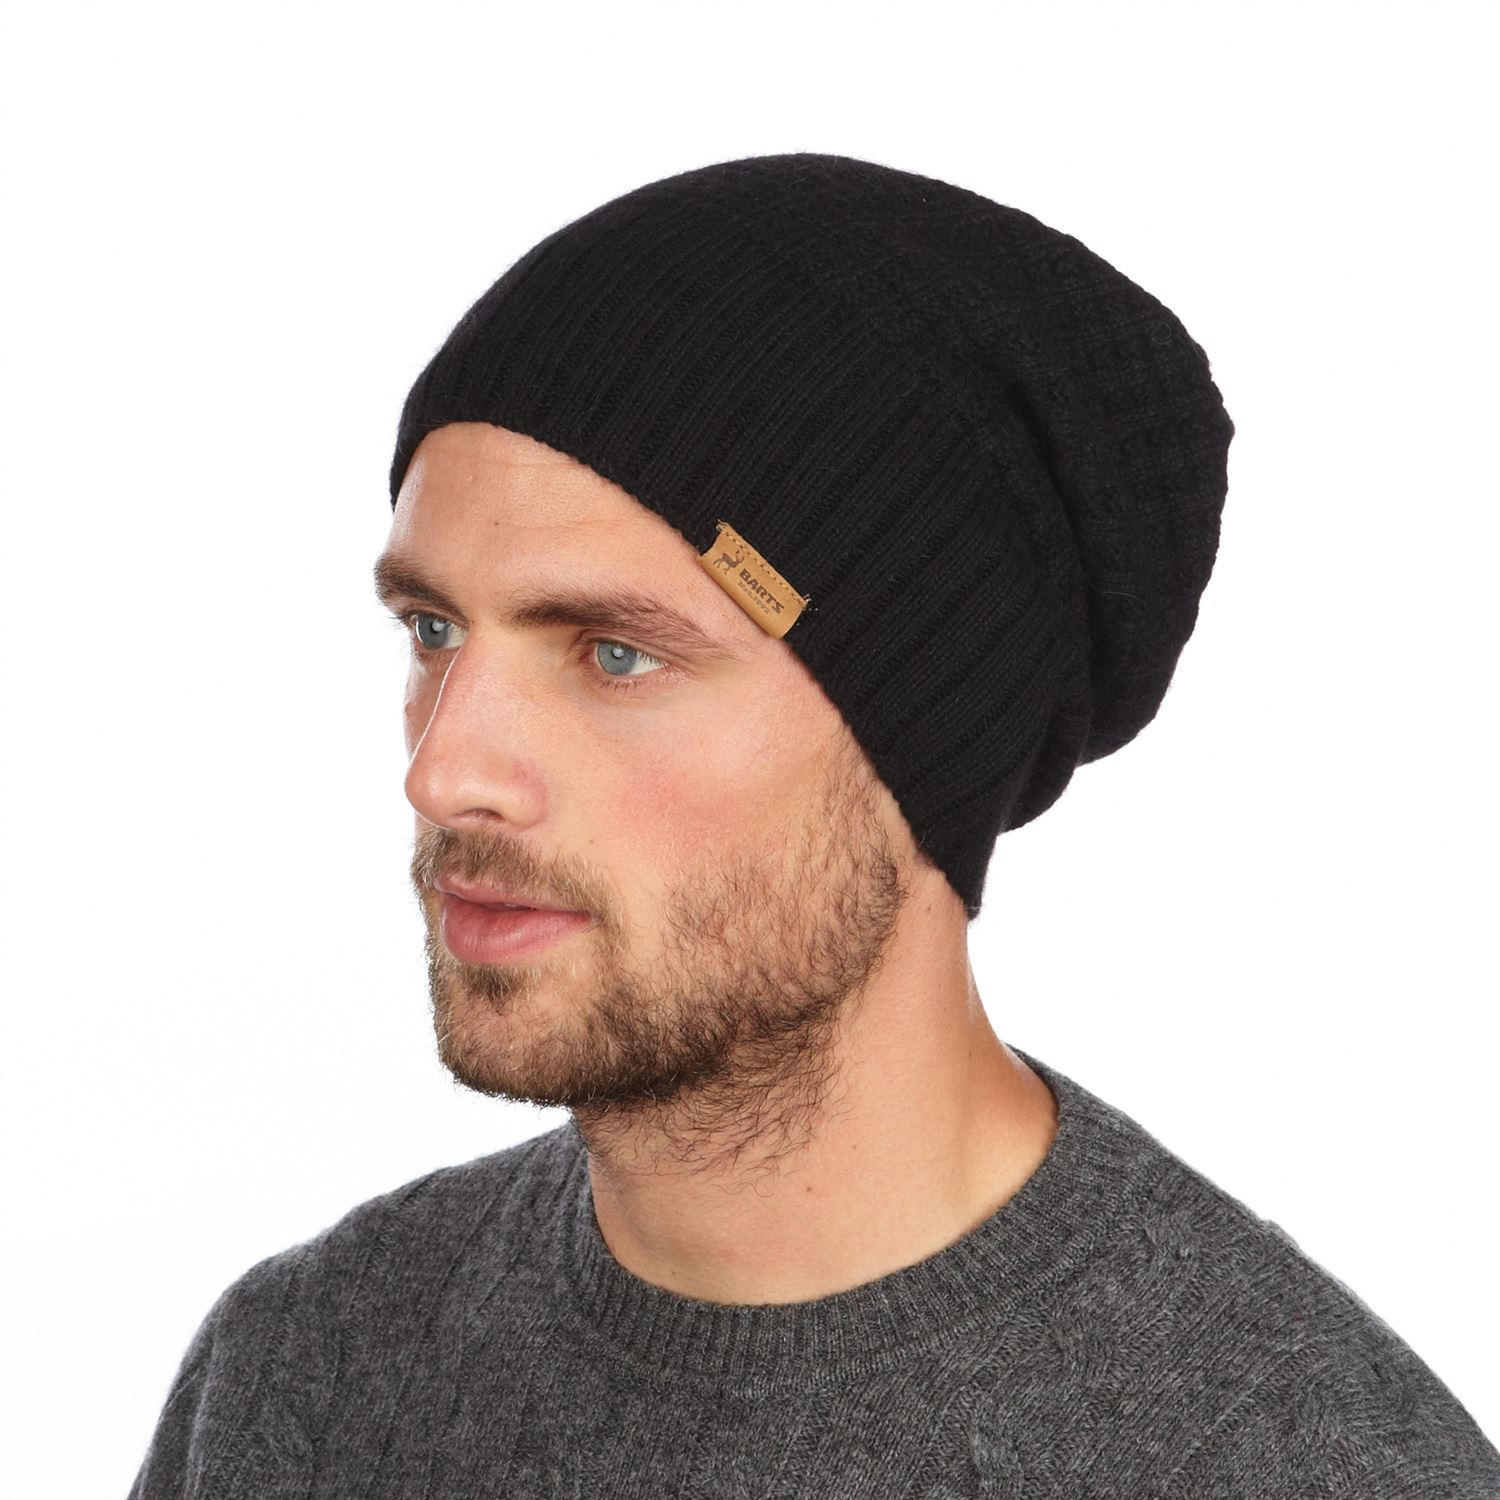 Discover the best Men's Skullies & Beanies in Best Sellers. Find the top most popular items in Amazon Best Sellers. Oversized Slouch Beanie Hats for Men & Women - Stay Warm & Stylish - Serious Beanies for Serious Style out of 5 stars $ - $ # Dickies Men's 14 Inch Cuffed Knit Beanie Hat out of 5 stars